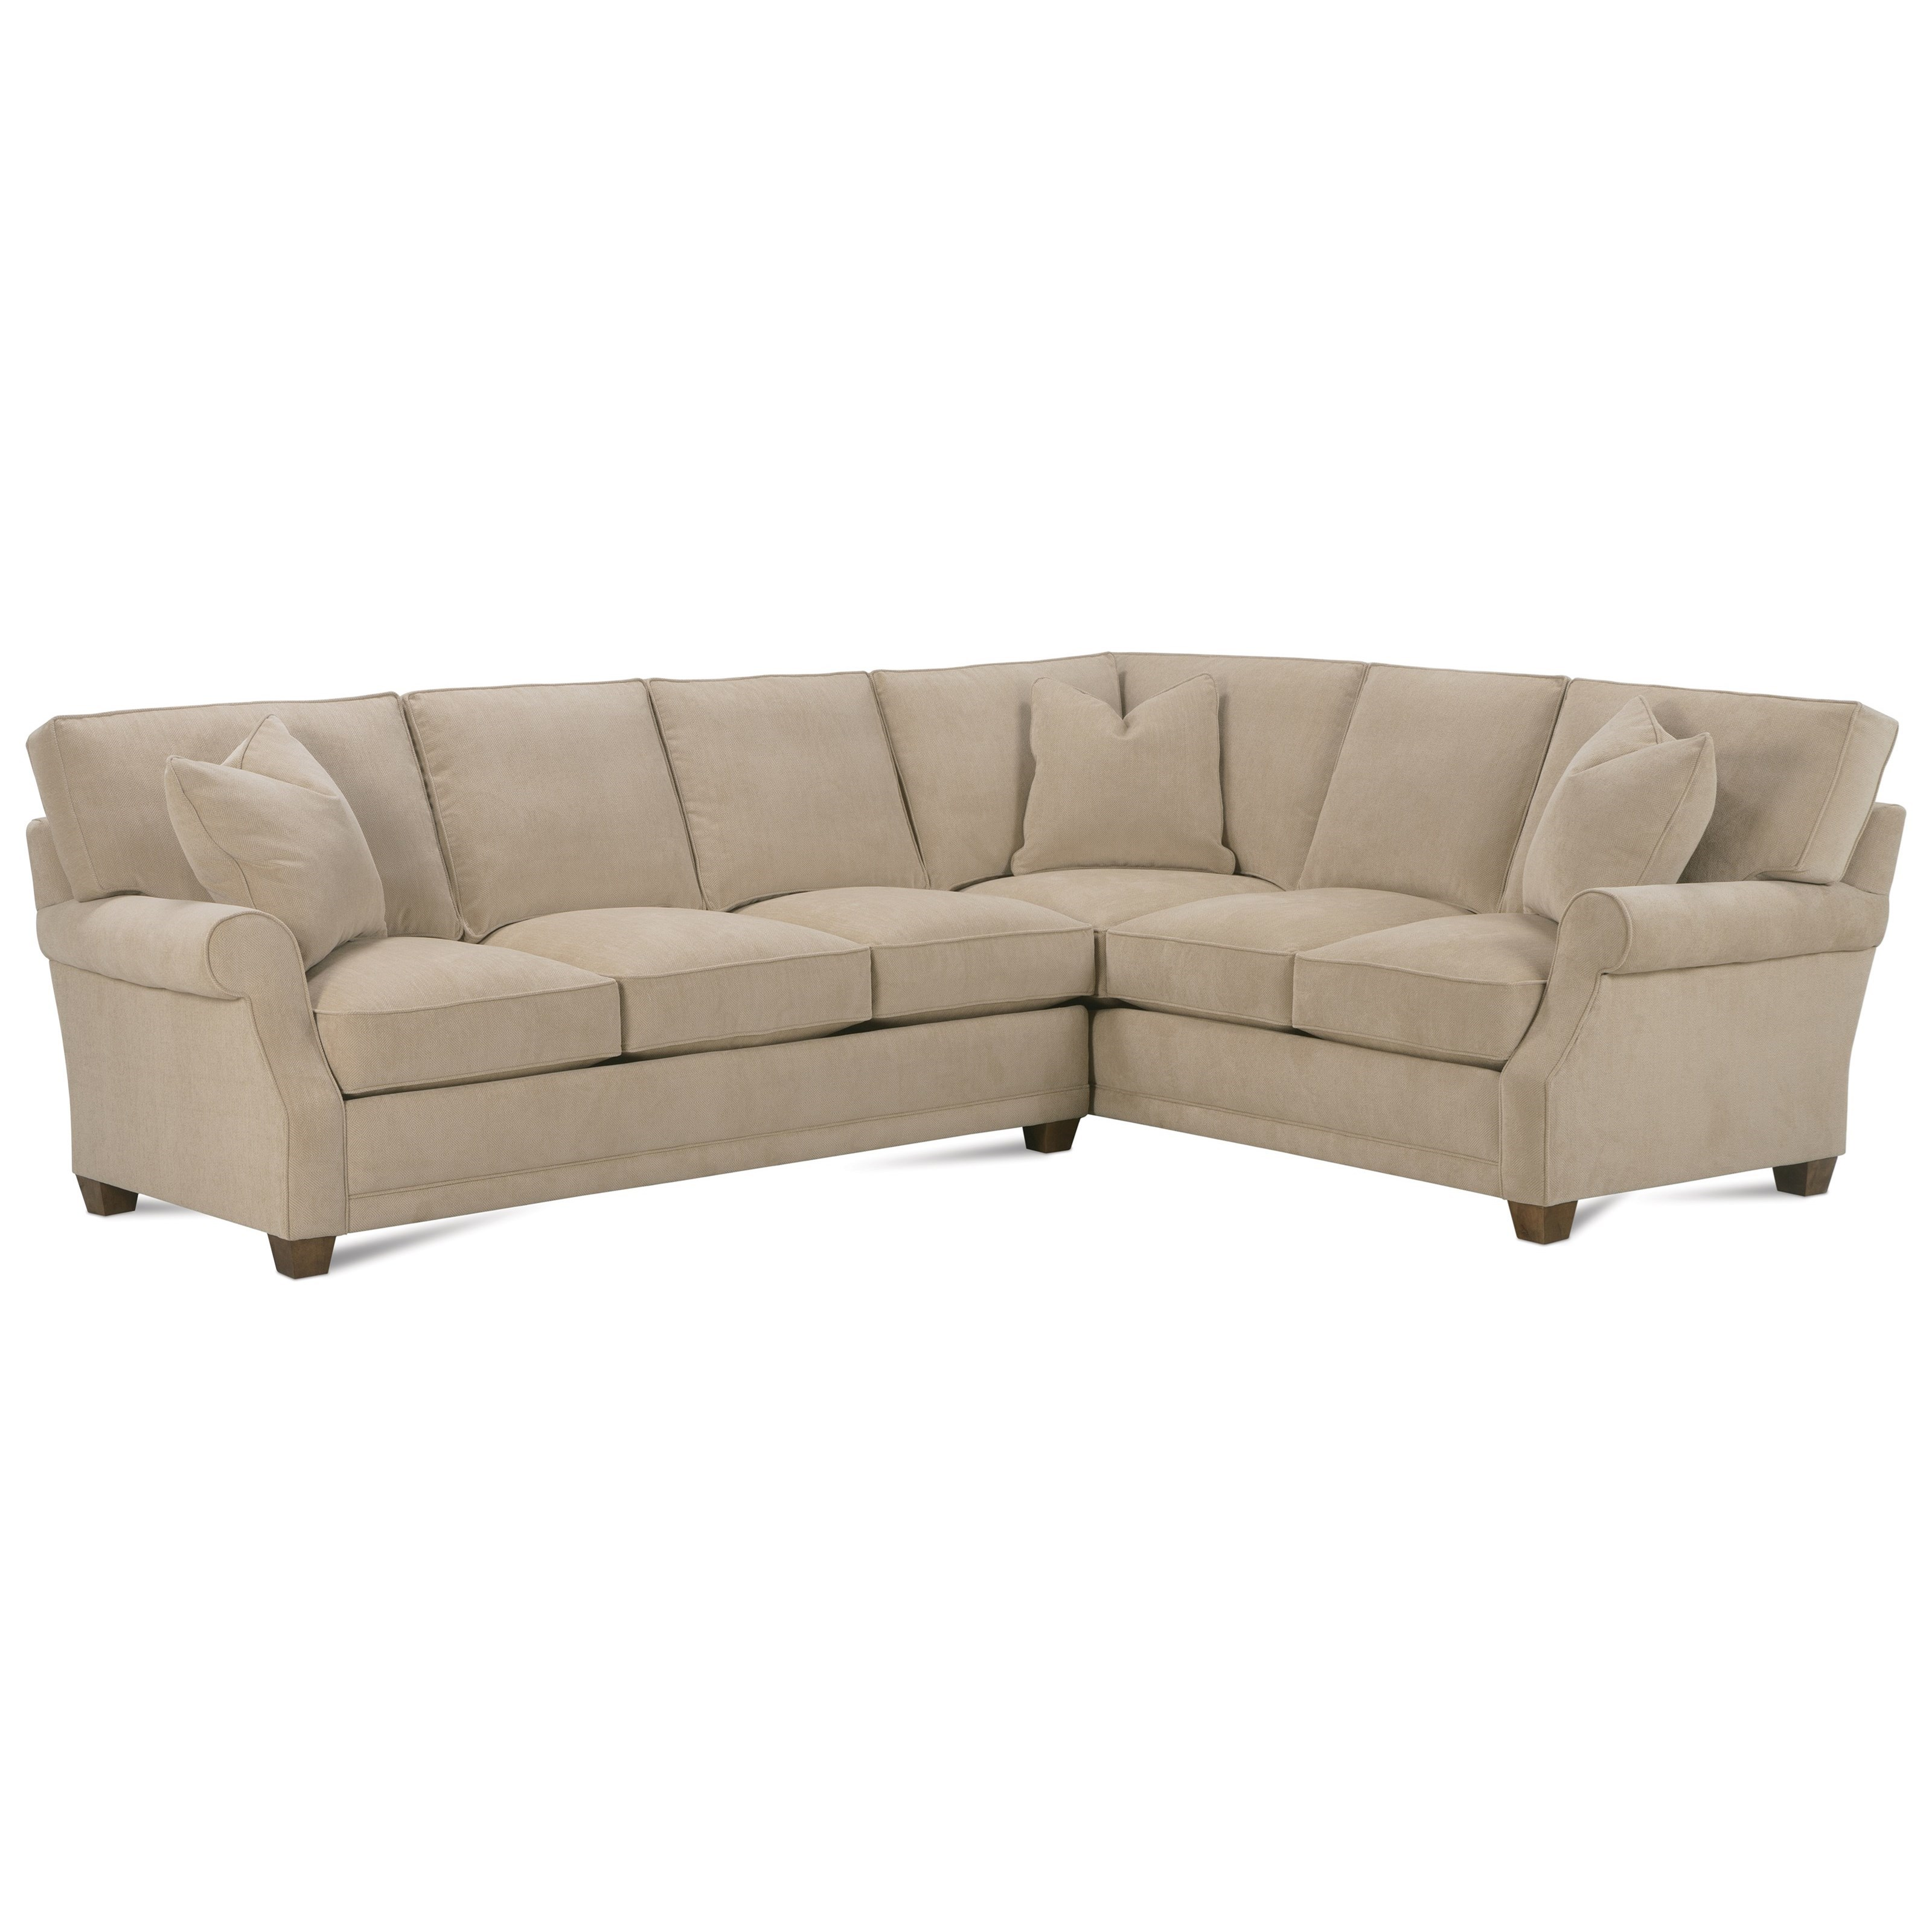 Rowe Baker Transitional Sectional Sofa Steger 39 S Furniture Sectional Sofas